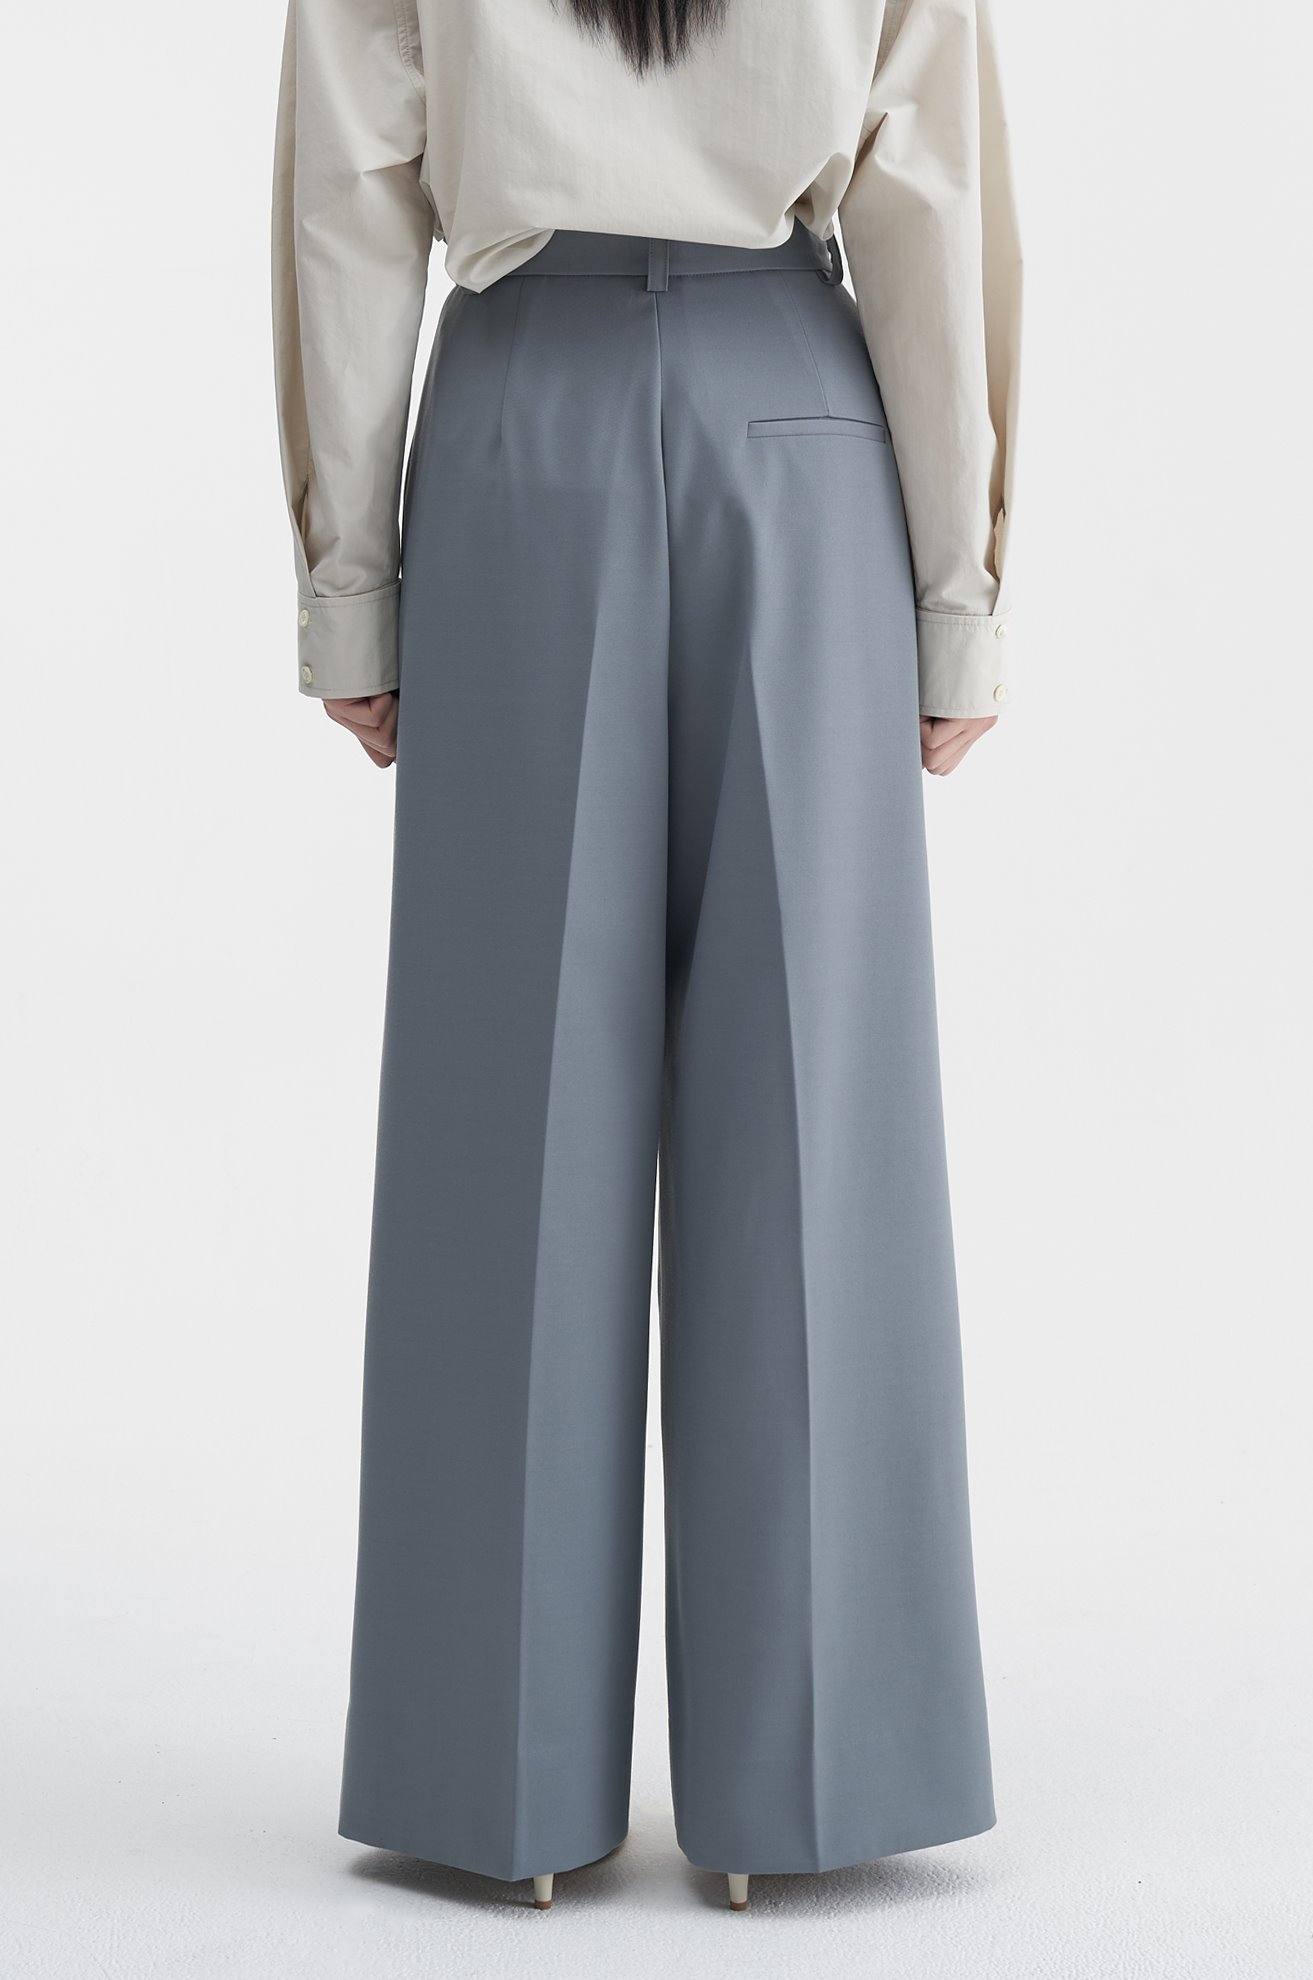 Two Pleat Wide Trouser (MINT)ATELIER EDITION